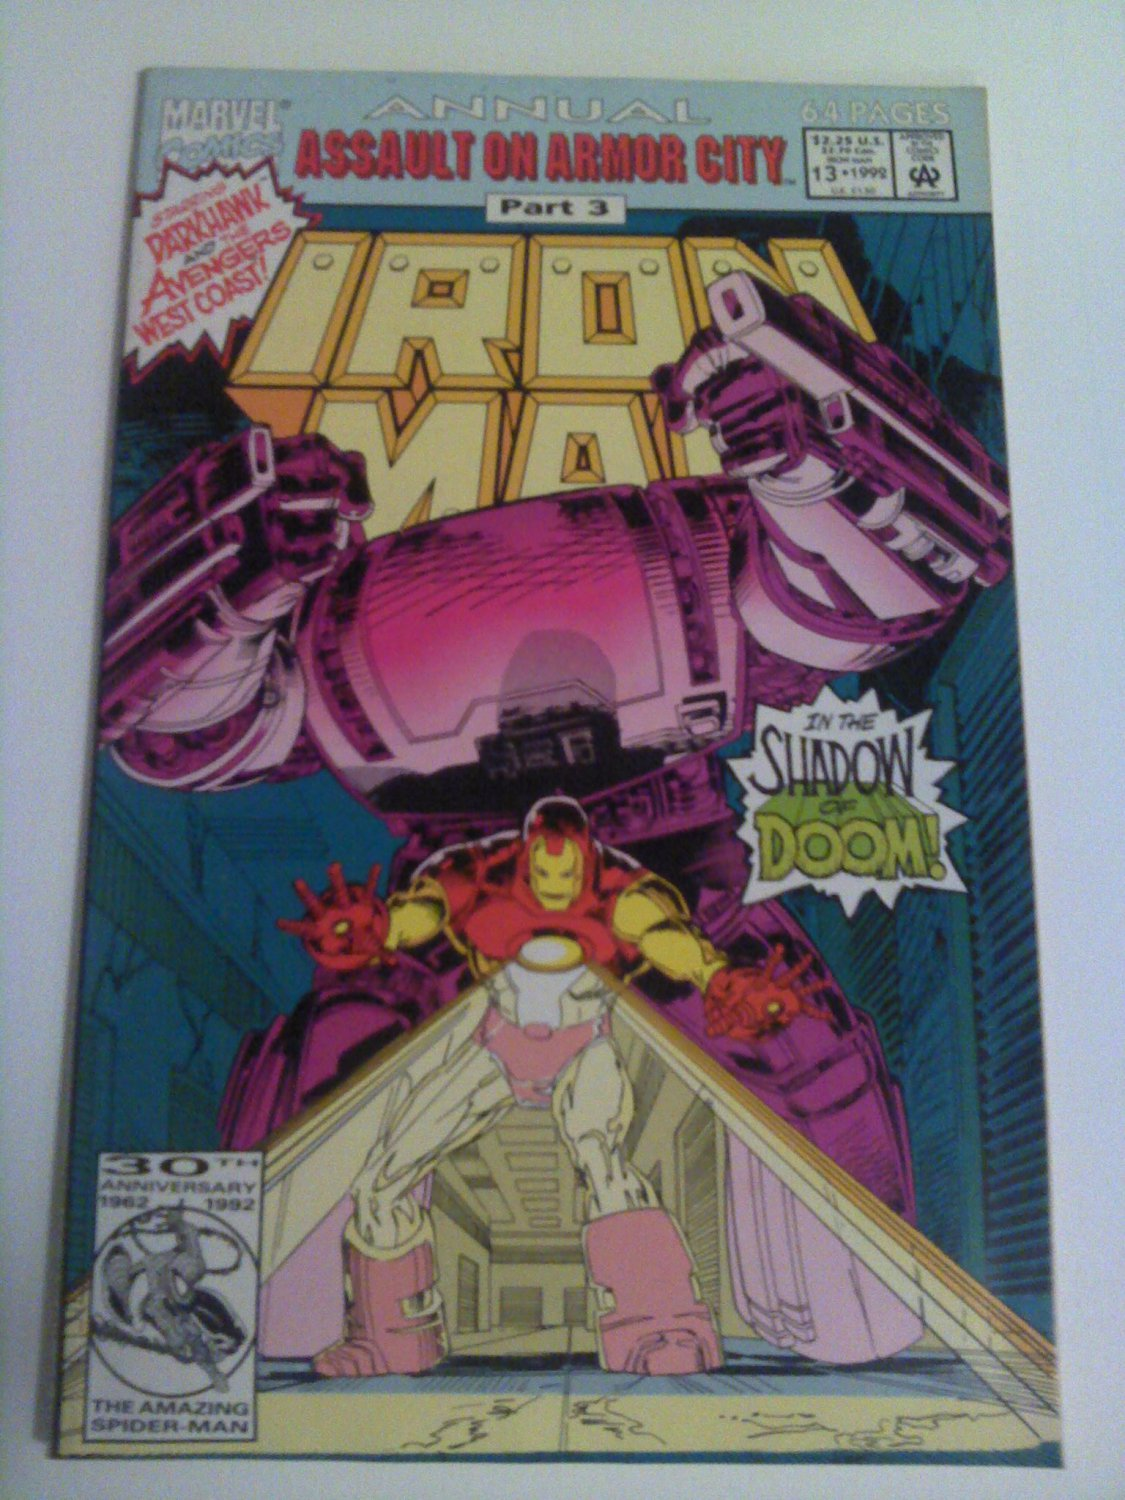 Iron Man ann. #13 Darkhawk, Avengers West Coast appearance